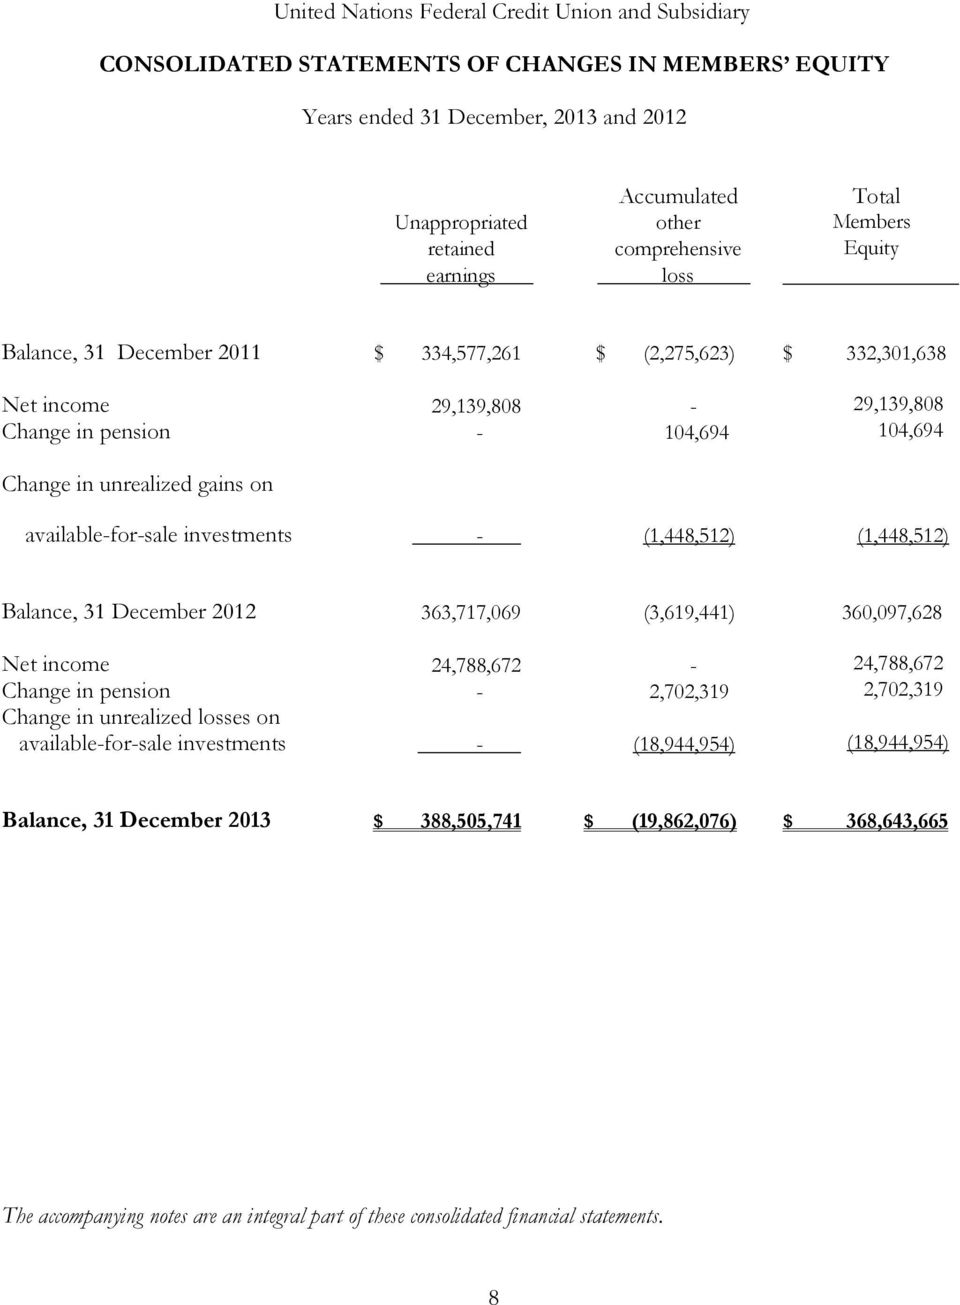 (1,448,512) (1,448,512) Balance, 31 December 2012 363,717,069 (3,619,441) 360,097,628 Net income 24,788,672-24,788,672 Change in pension - 2,702,319 2,702,319 Change in unrealized losses on